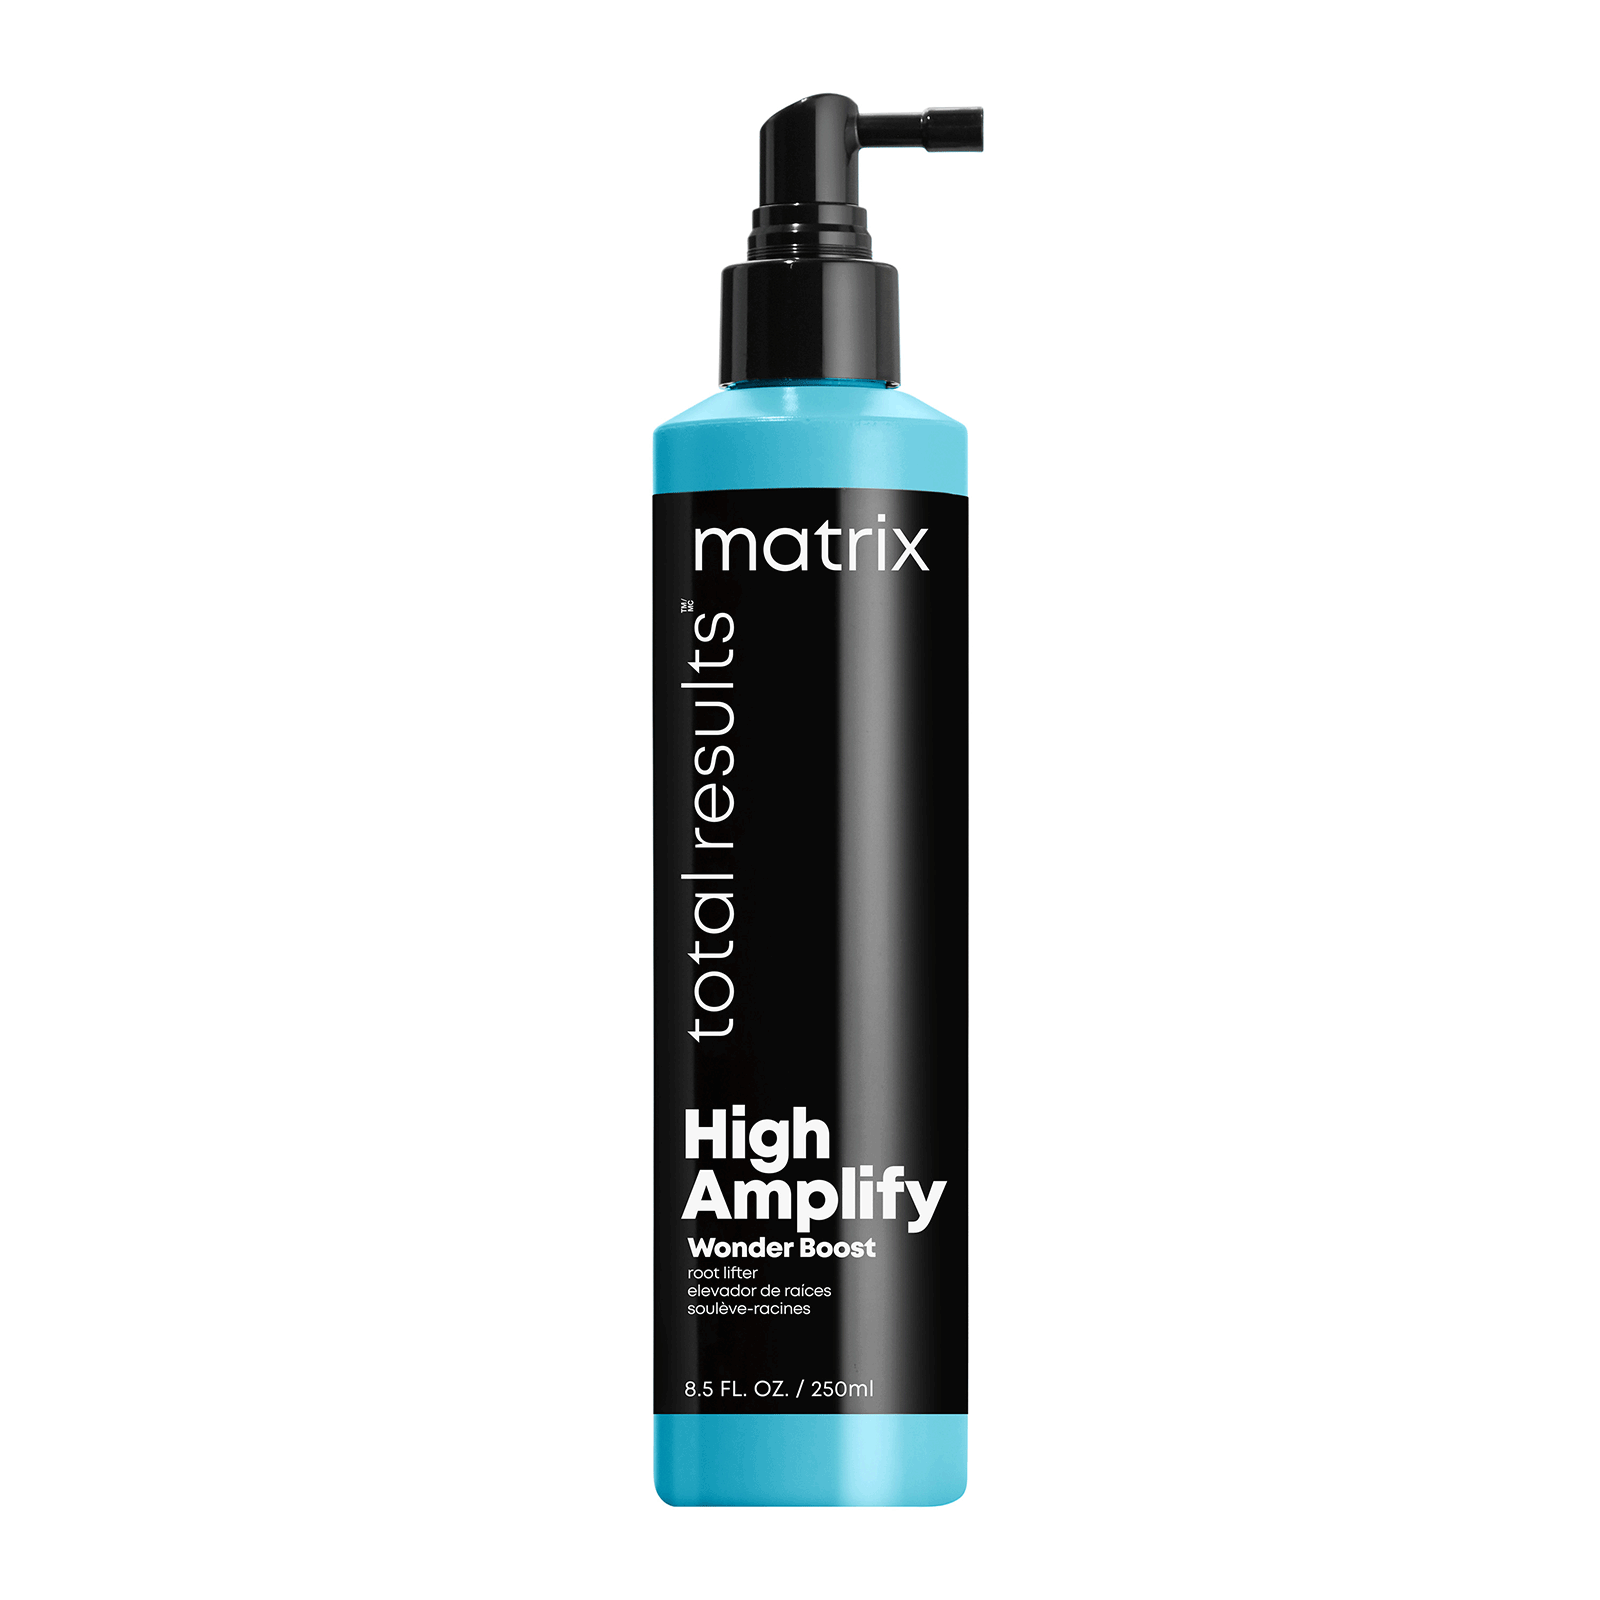 High Amplify Wonder Boost Root Lifter